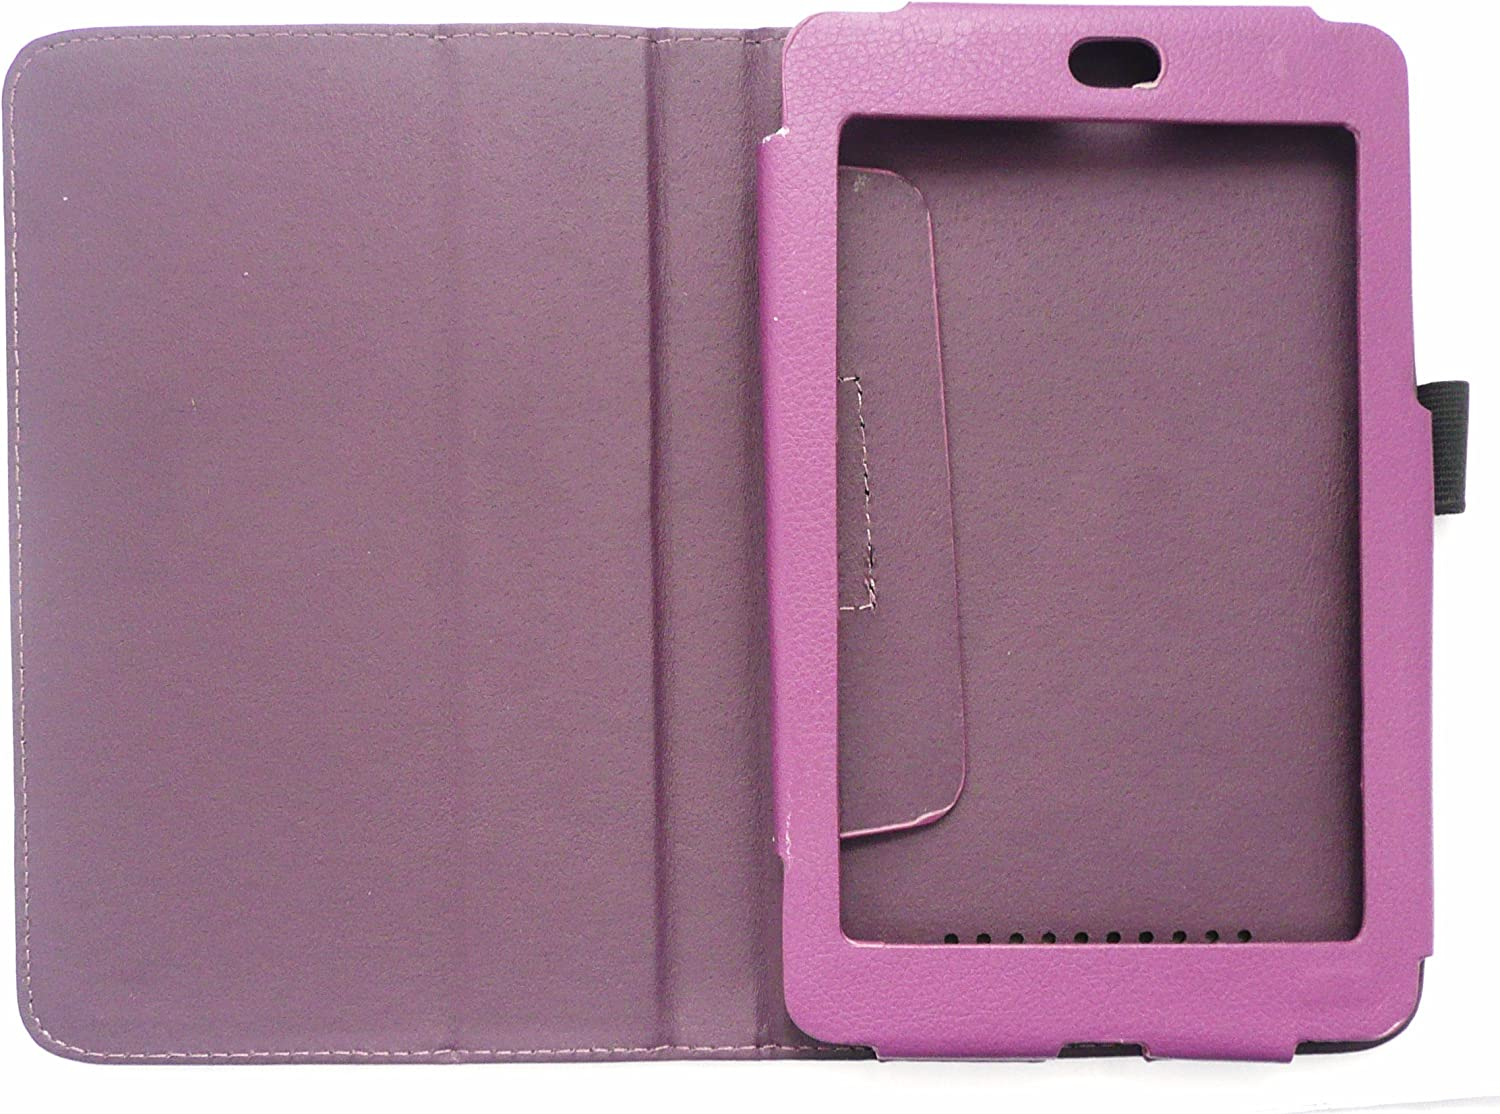 Blue PU Leather Multifunctional//Multi Angle Wallet//Cover//Stand//Typing Case With Sleep Wake Sensor Emartbuy/® Asus Google Nexus 7 Tablet LCD Screen Protector